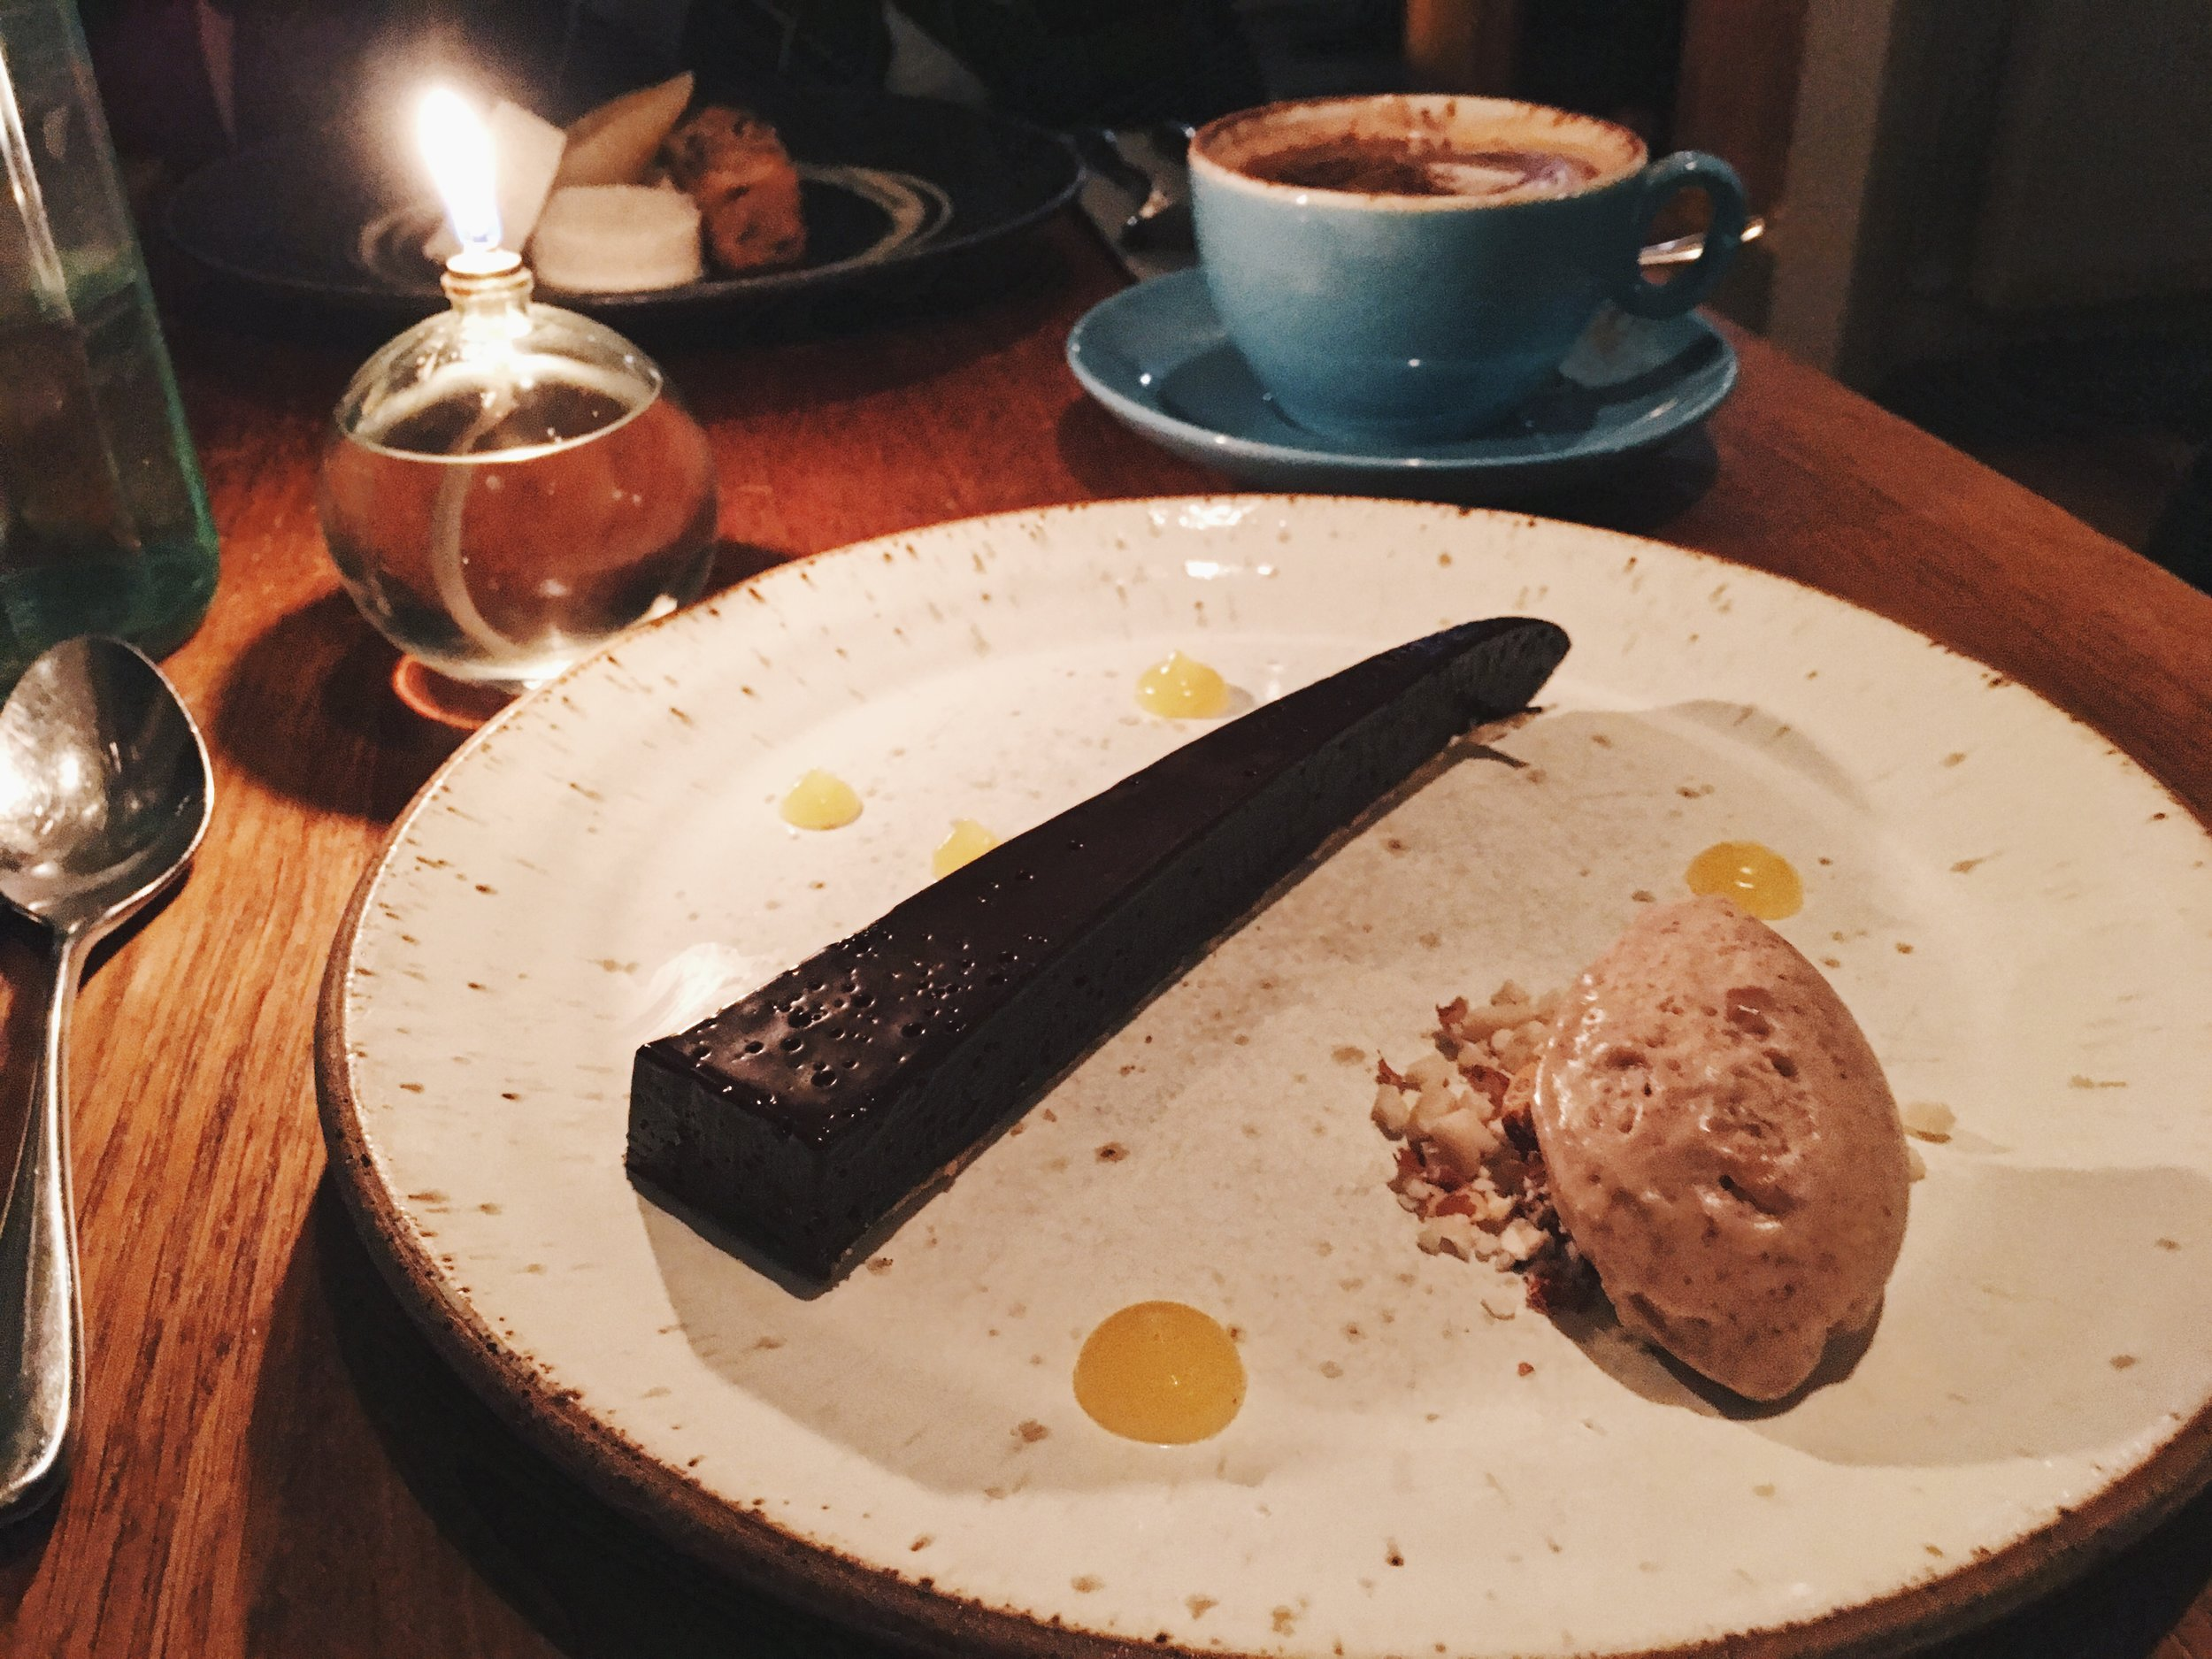 Salted Chocolate Tart at Acorn Vegetarian Kitchen, Bath